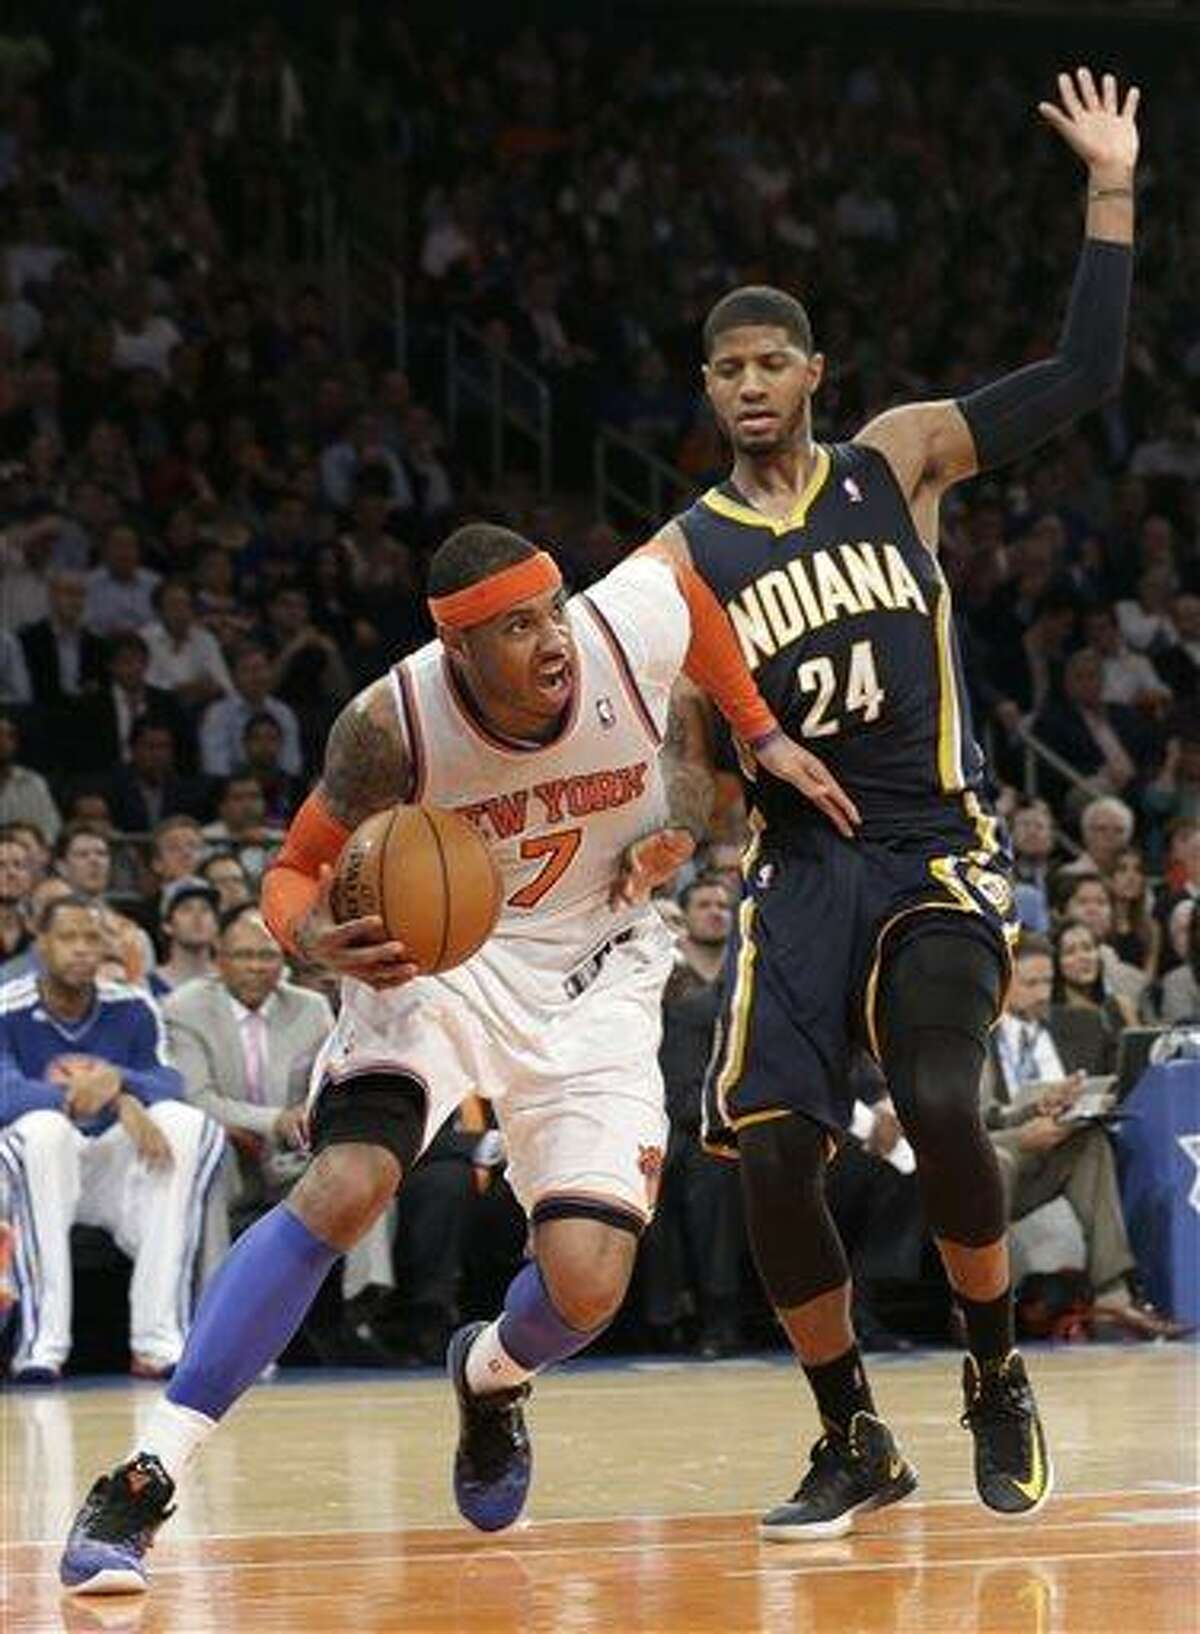 New York Knicks' Carmelo Anthony, left, drives against Indiana Pacers' Paul George in the second half of Game 5 of an Eastern Conference semifinal in the NBA basketball playoffs, at Madison Square Garden in New York, Thursday, May 16, 2013. The Knicks won 85-75. (AP Photo/Julio Cortez)